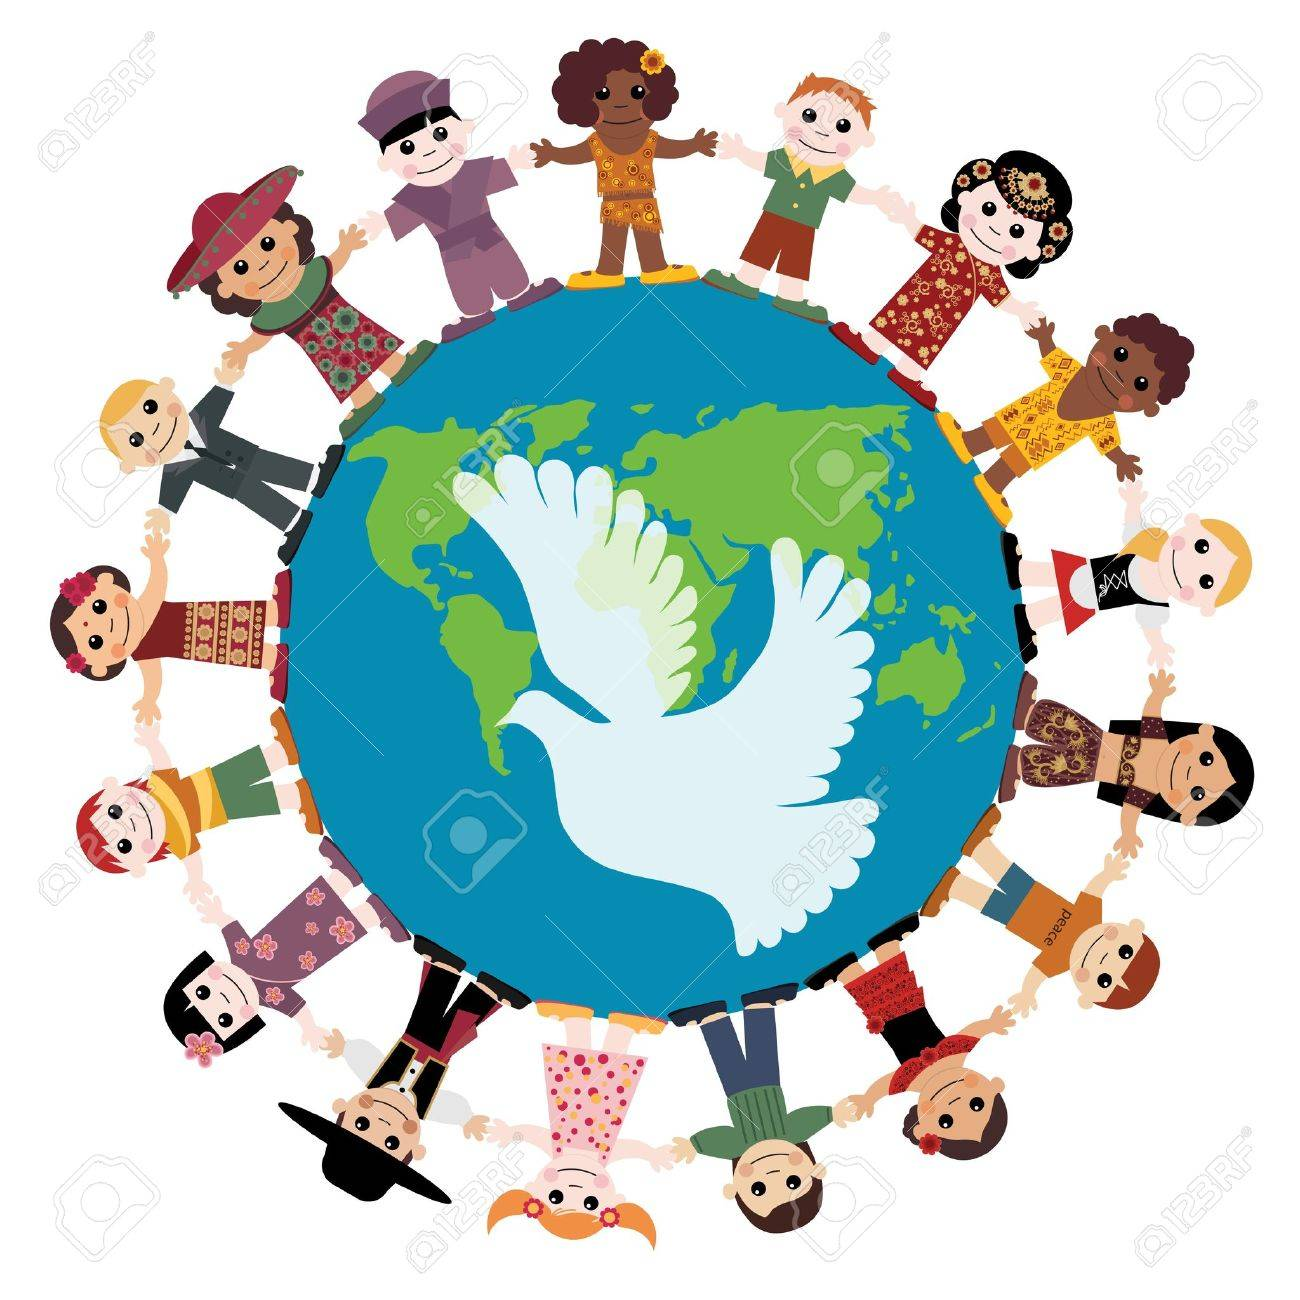 Multicultural clipart from around the world picture royalty free download Children Around The World Clipart | Free download best Children ... picture royalty free download